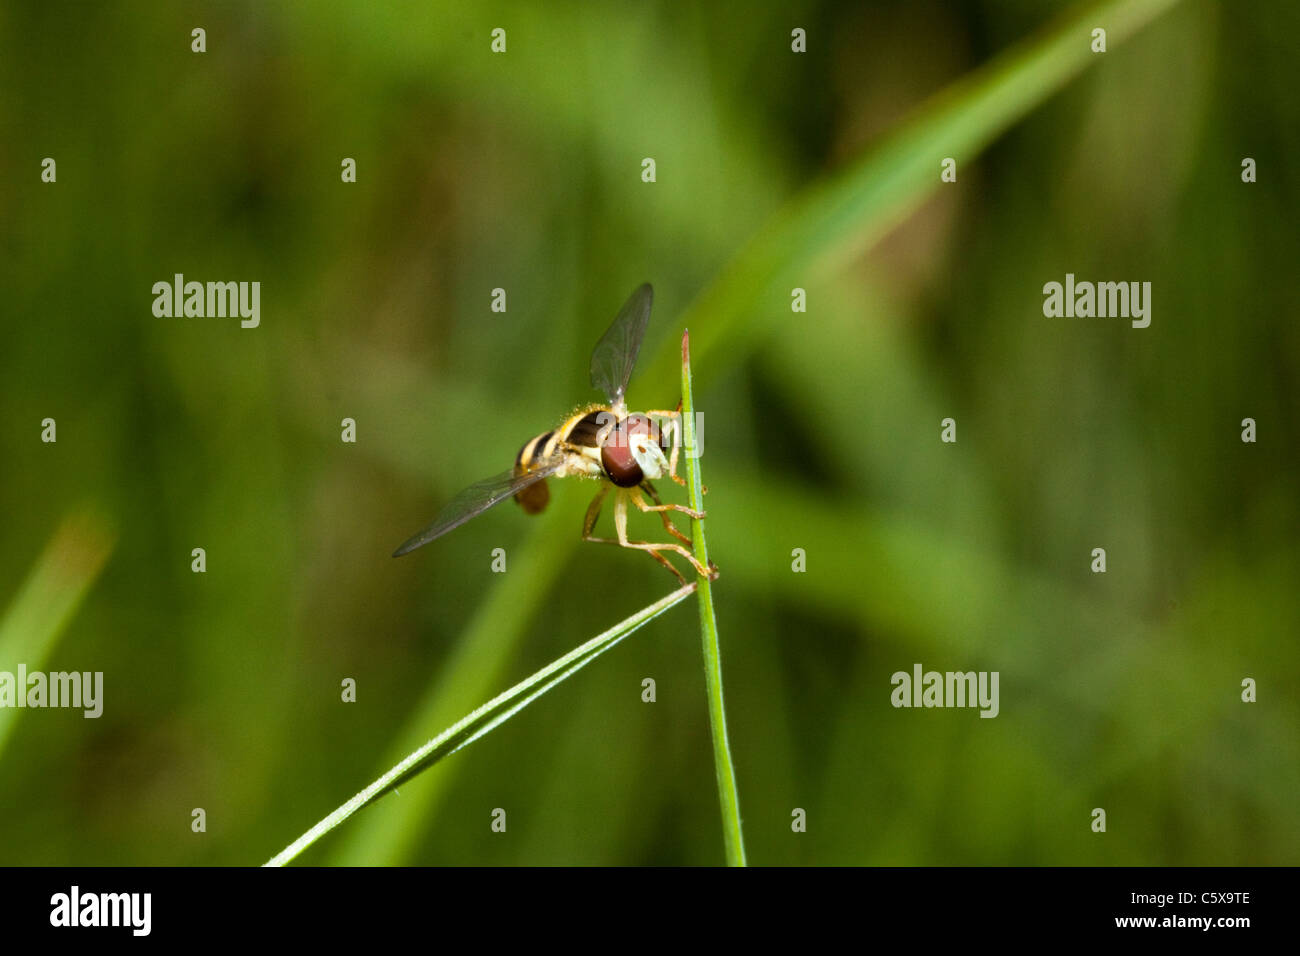 Hover fly (hoverfly) garden in Kent, England, UK - Stock Image